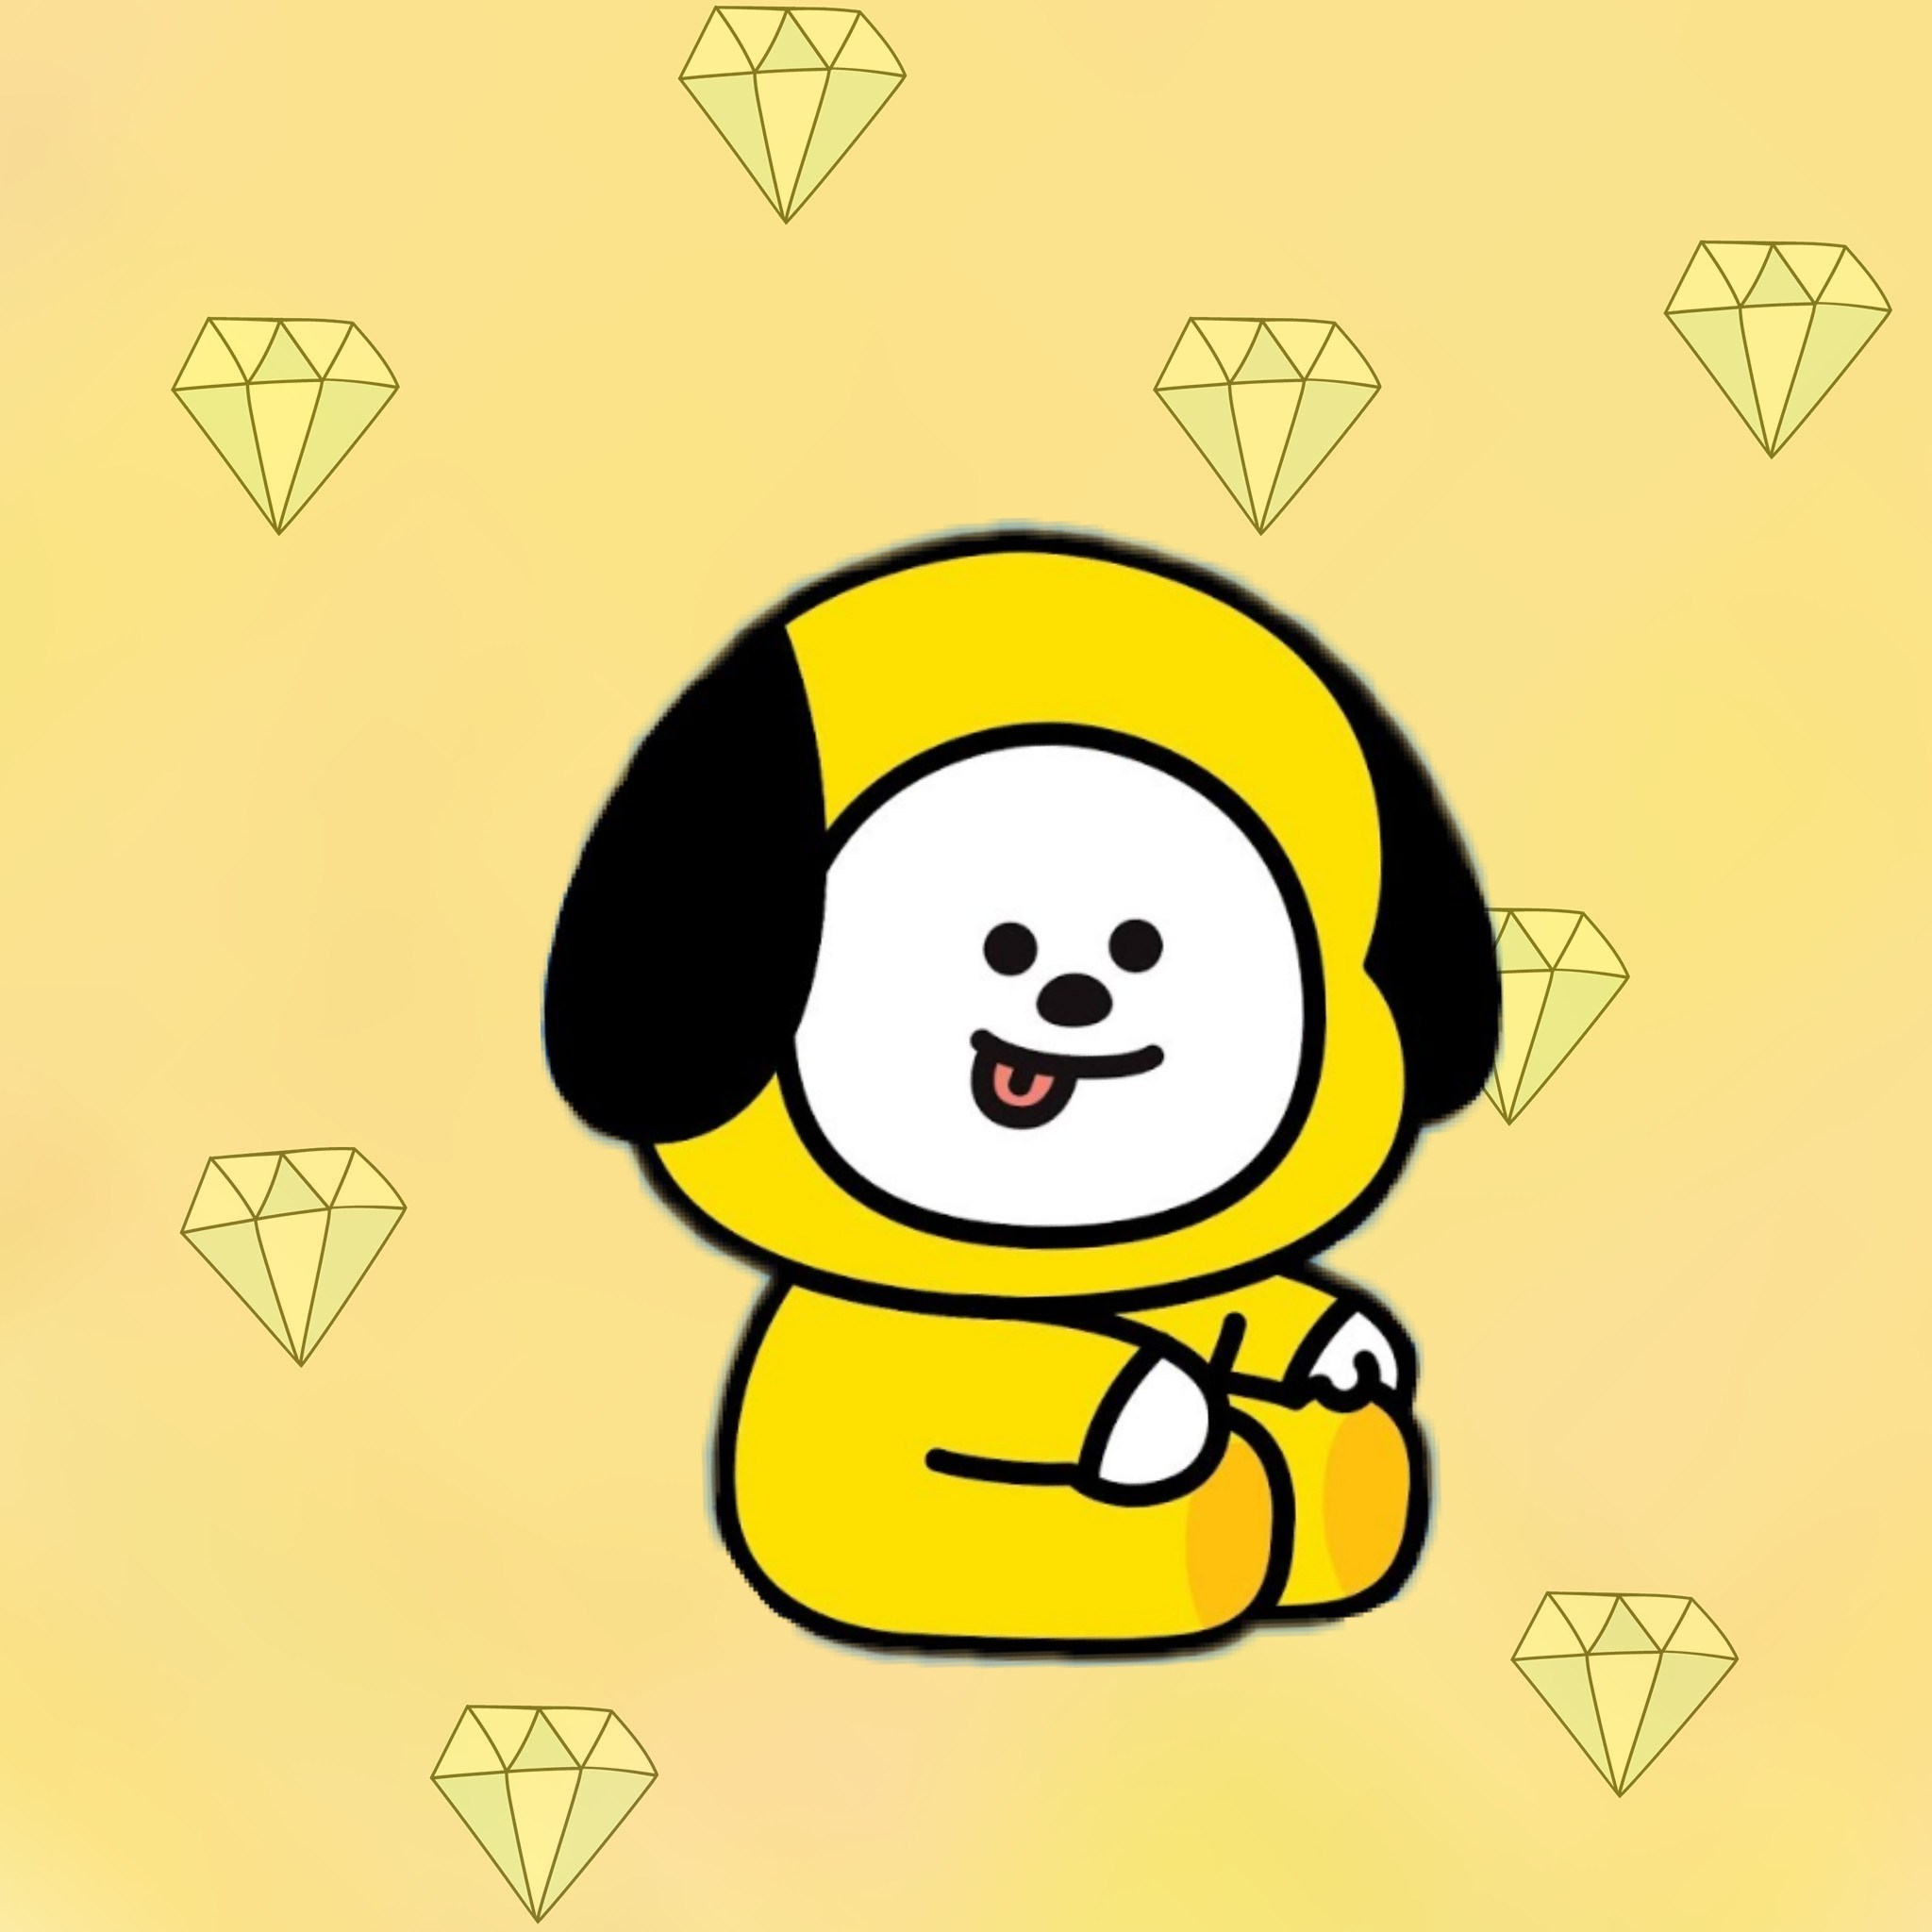 bt21 wallpaper 69